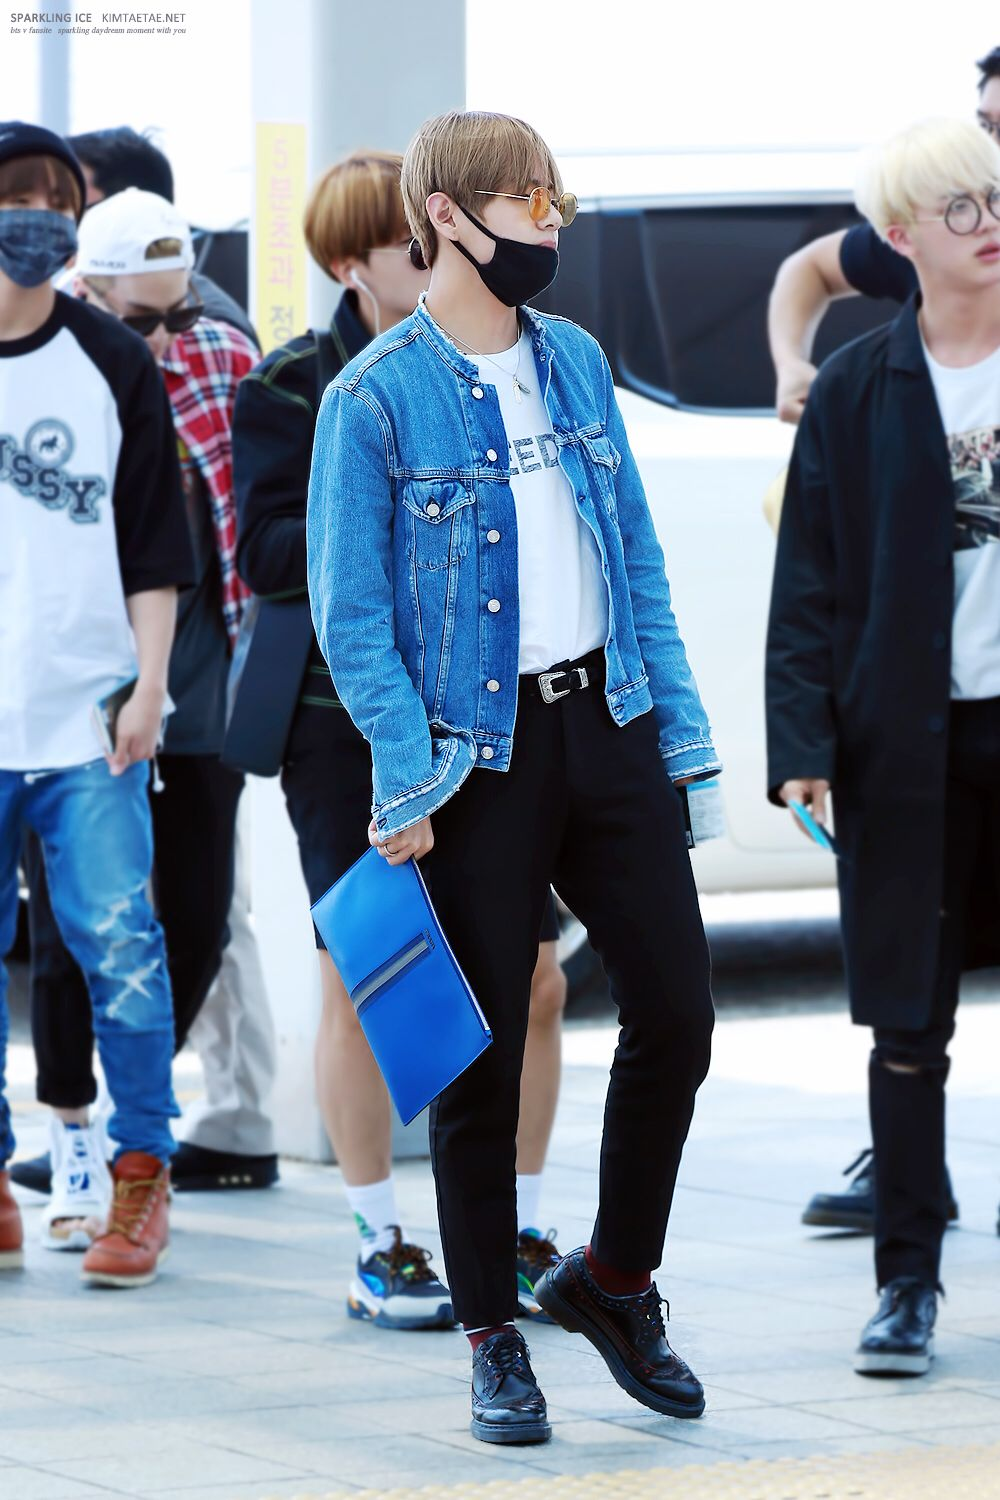 Bts V Taehyung Airport Fashion Kpop Idol Fashion Pinterest Airport Fashion Bts And Fashion